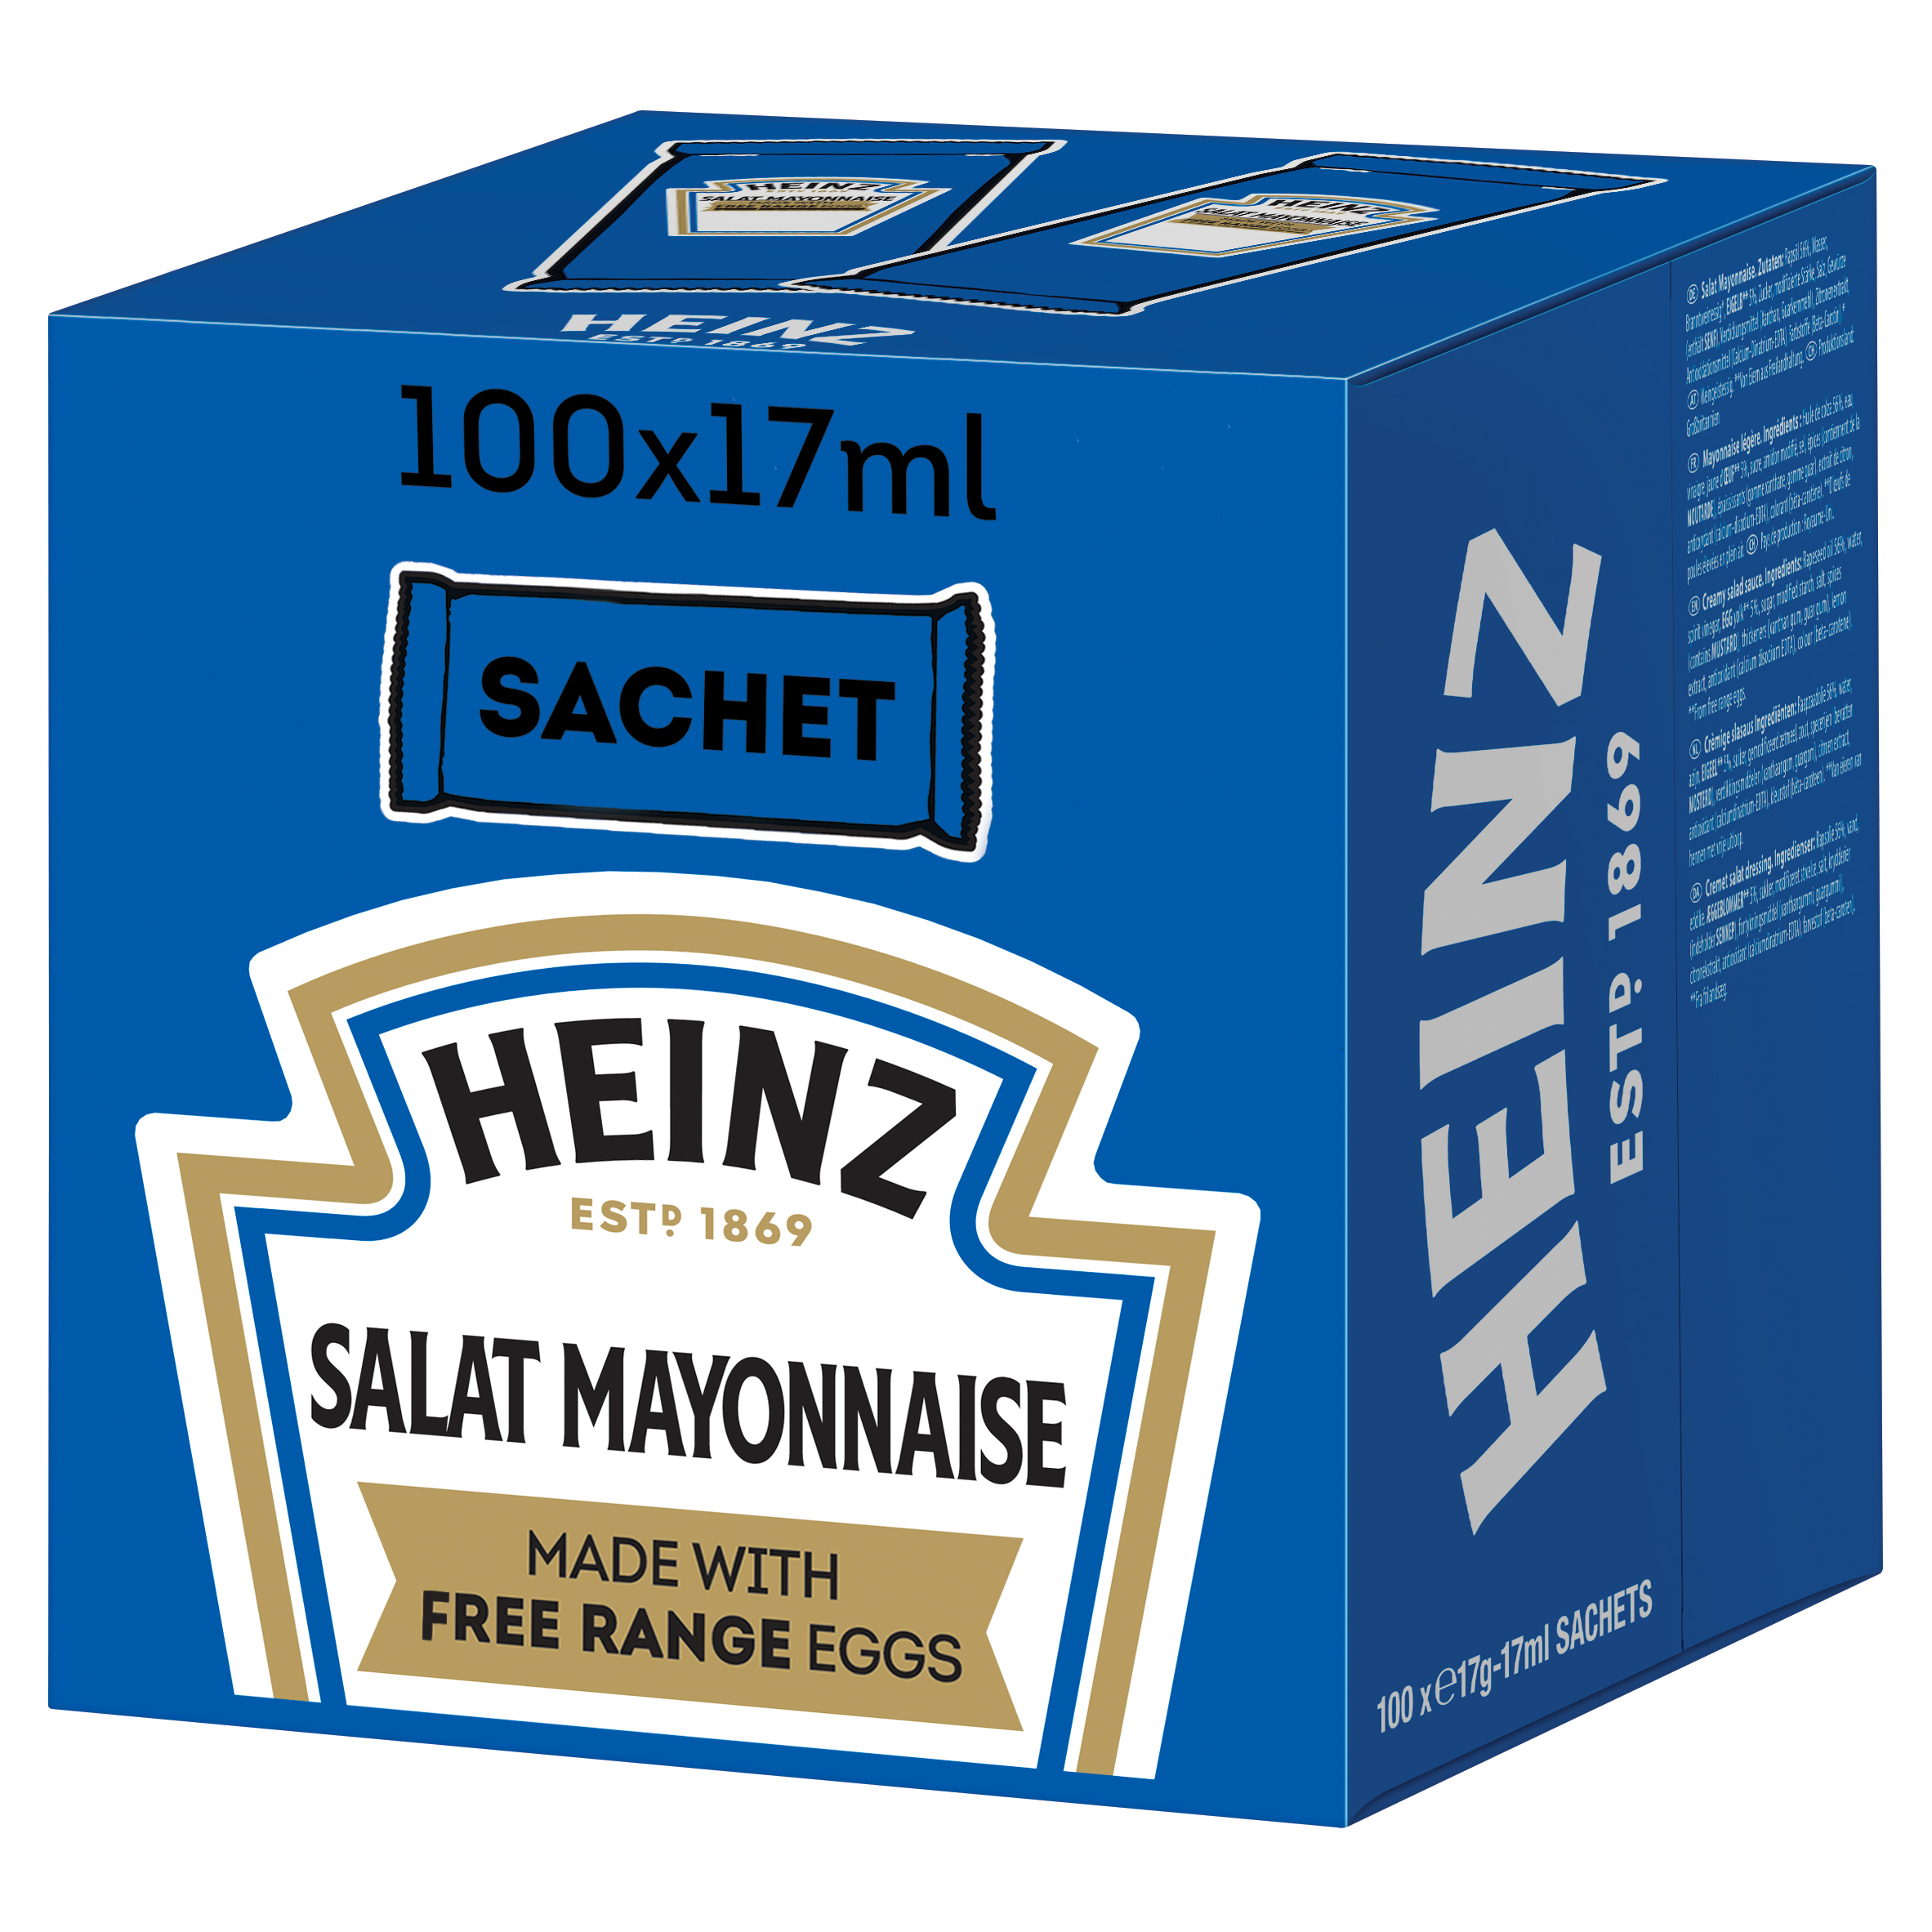 Heinz Salat Mayonnaise 17ml